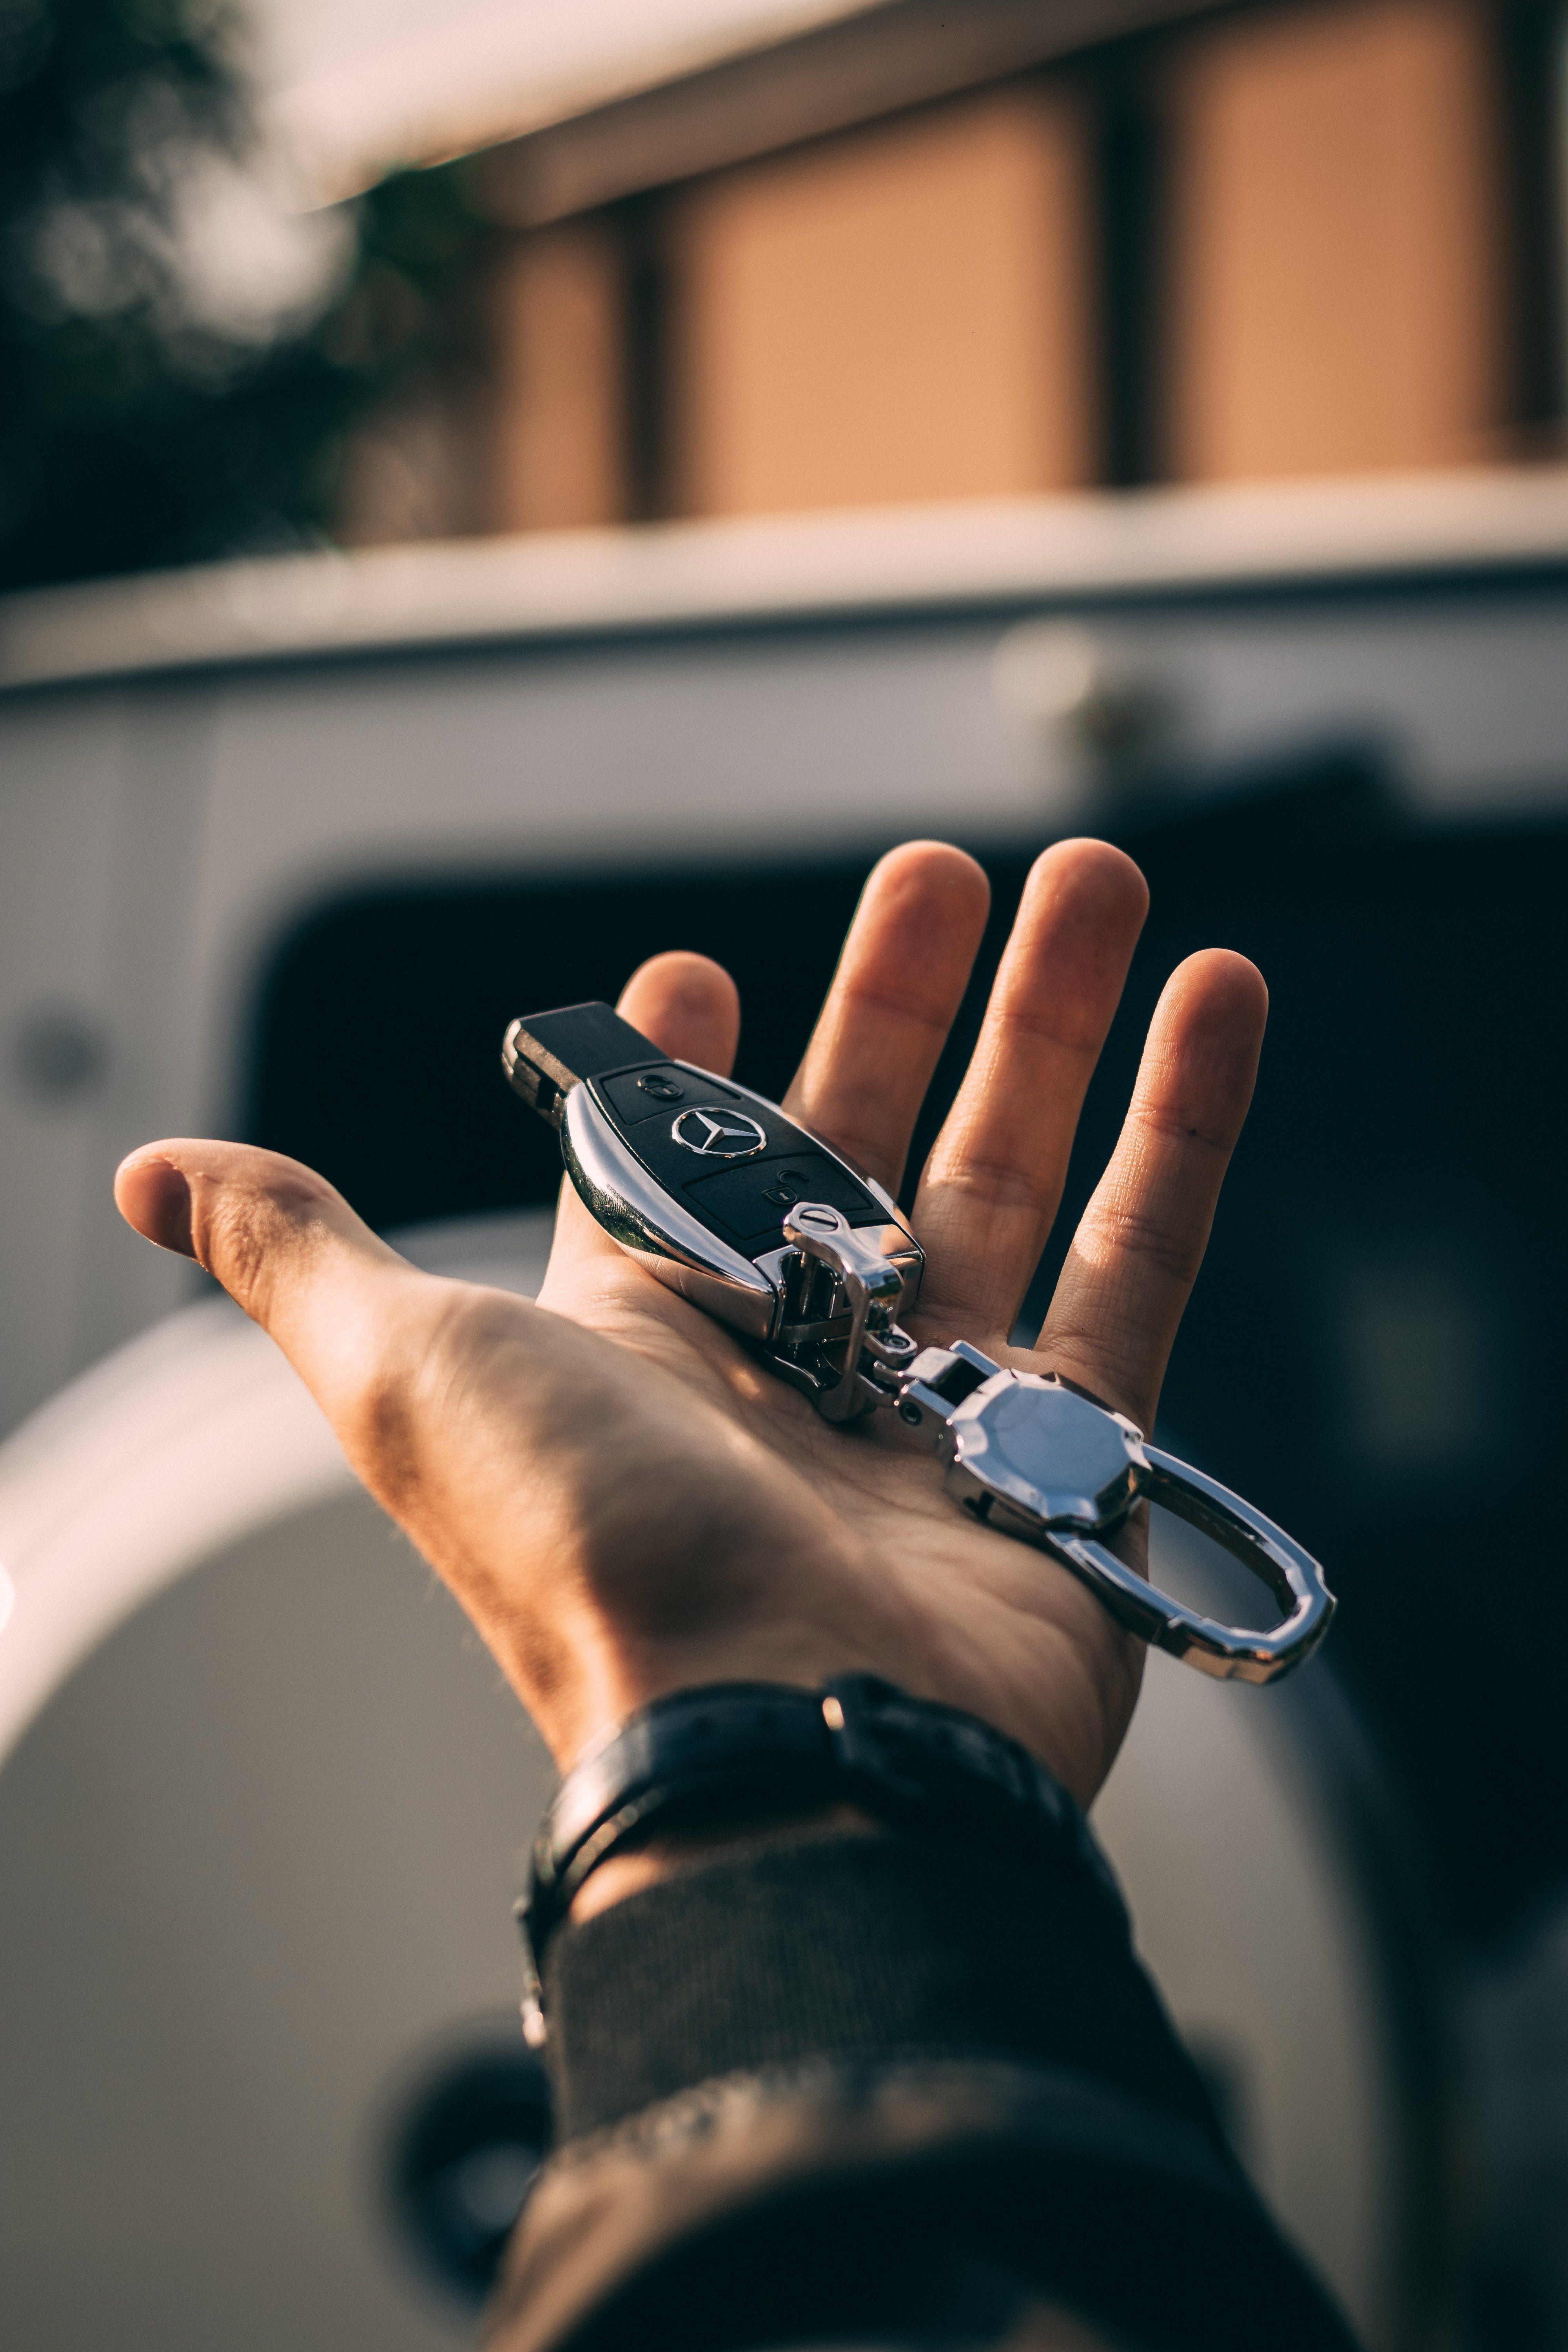 A Mercedes car key on the palm of a hand | Source: Unsplash.com